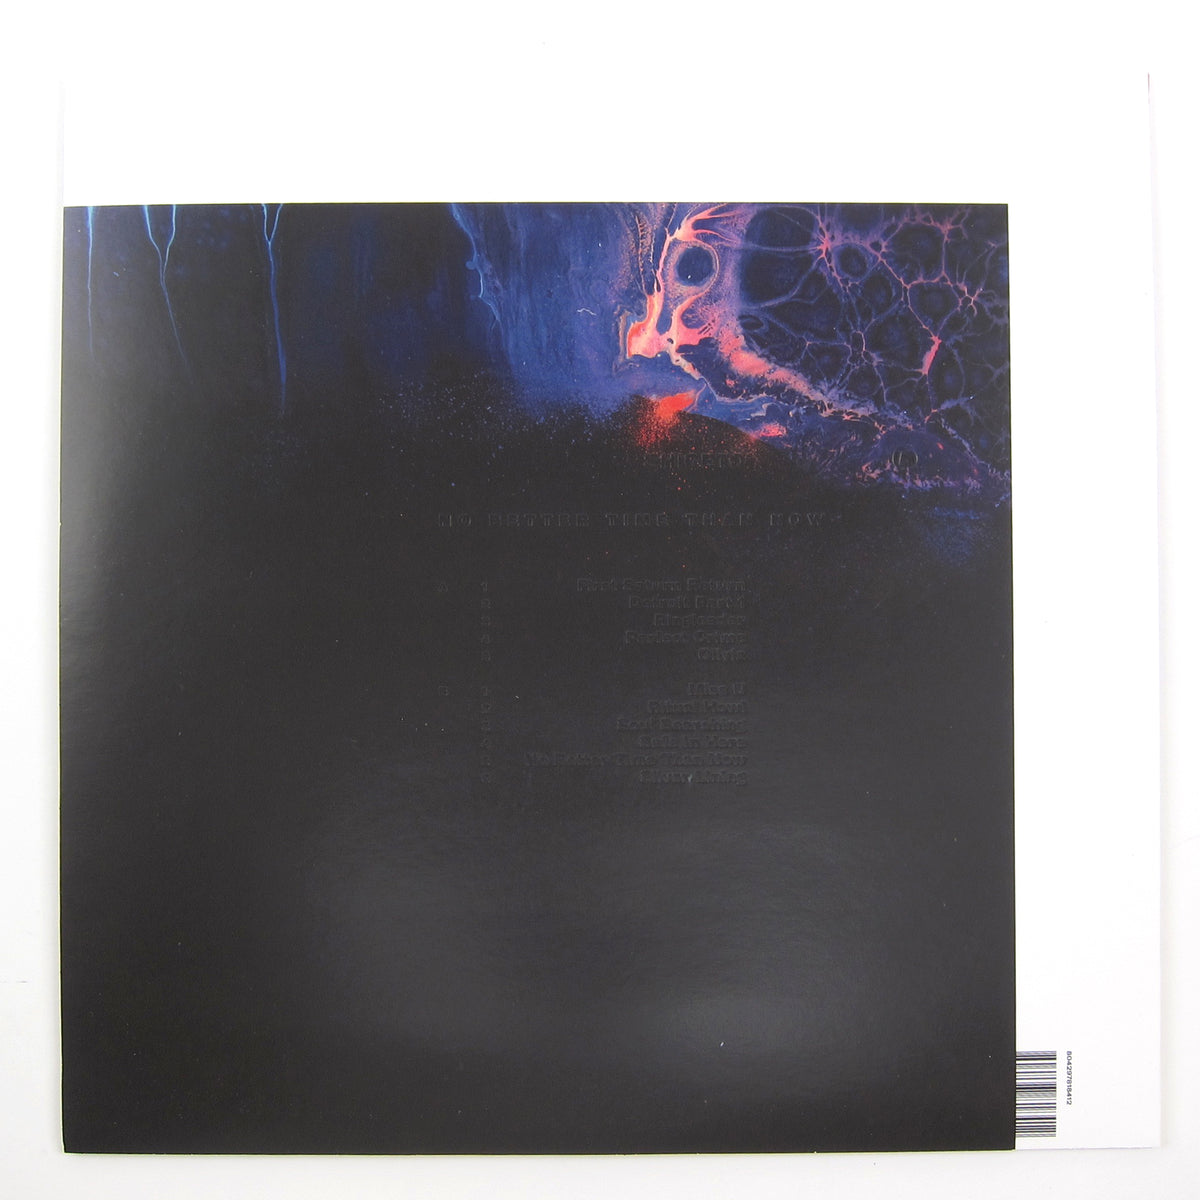 Shigeto: No Better Time Than Now Vinyl LP